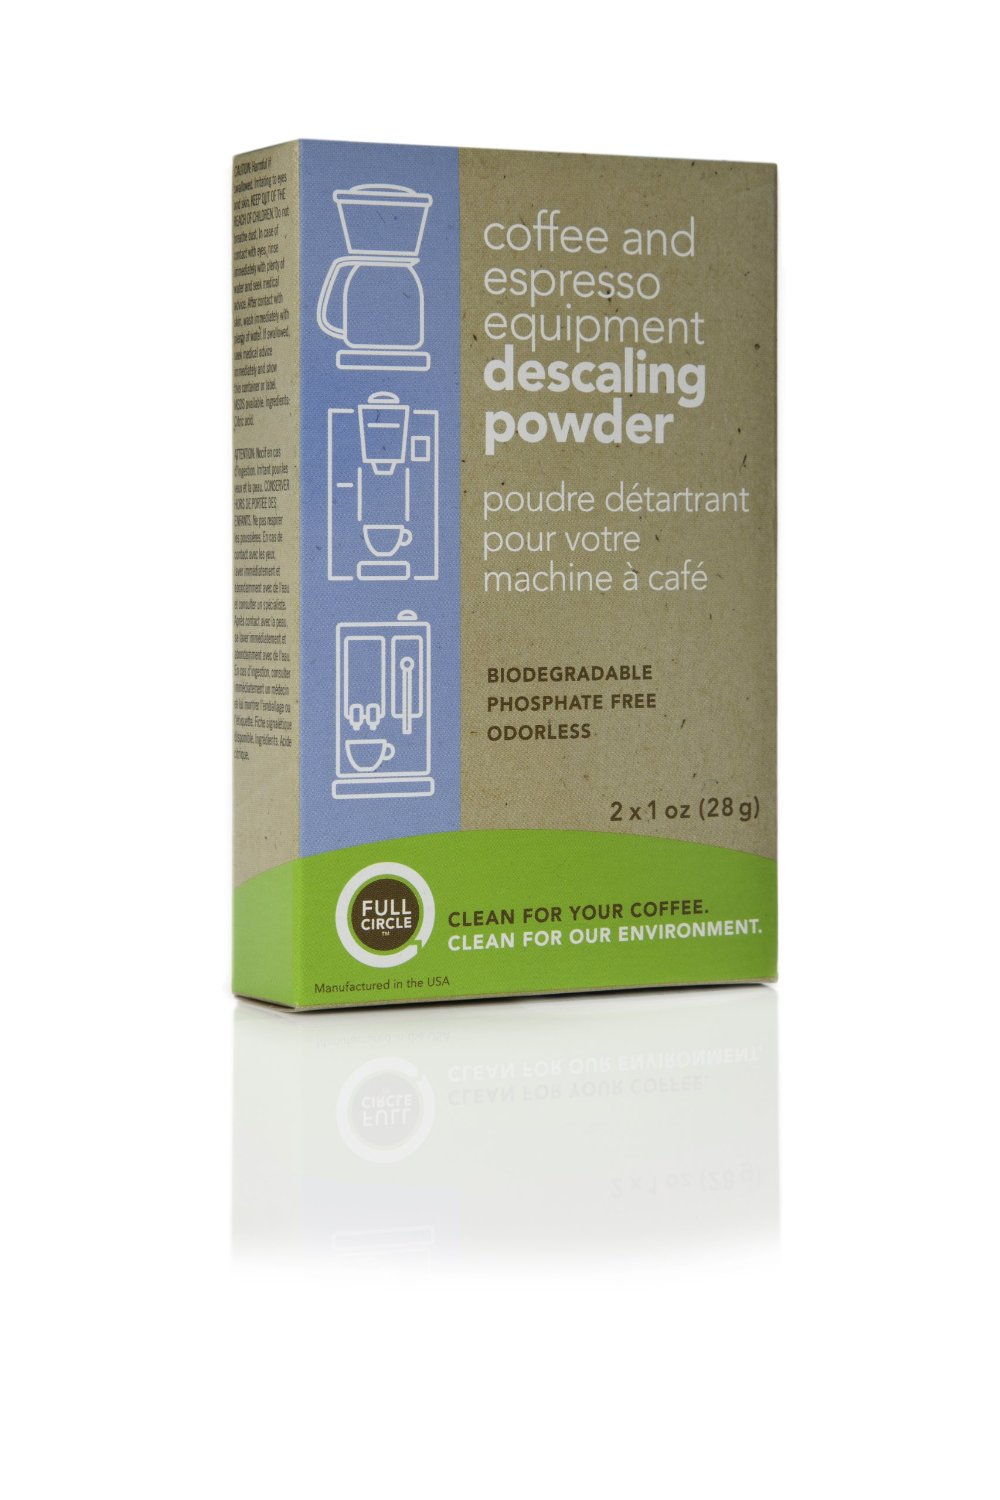 Full Circle Coffee and Espresso Machine Descaling Powder, 2 Single Use Packets by Harold Import Co.